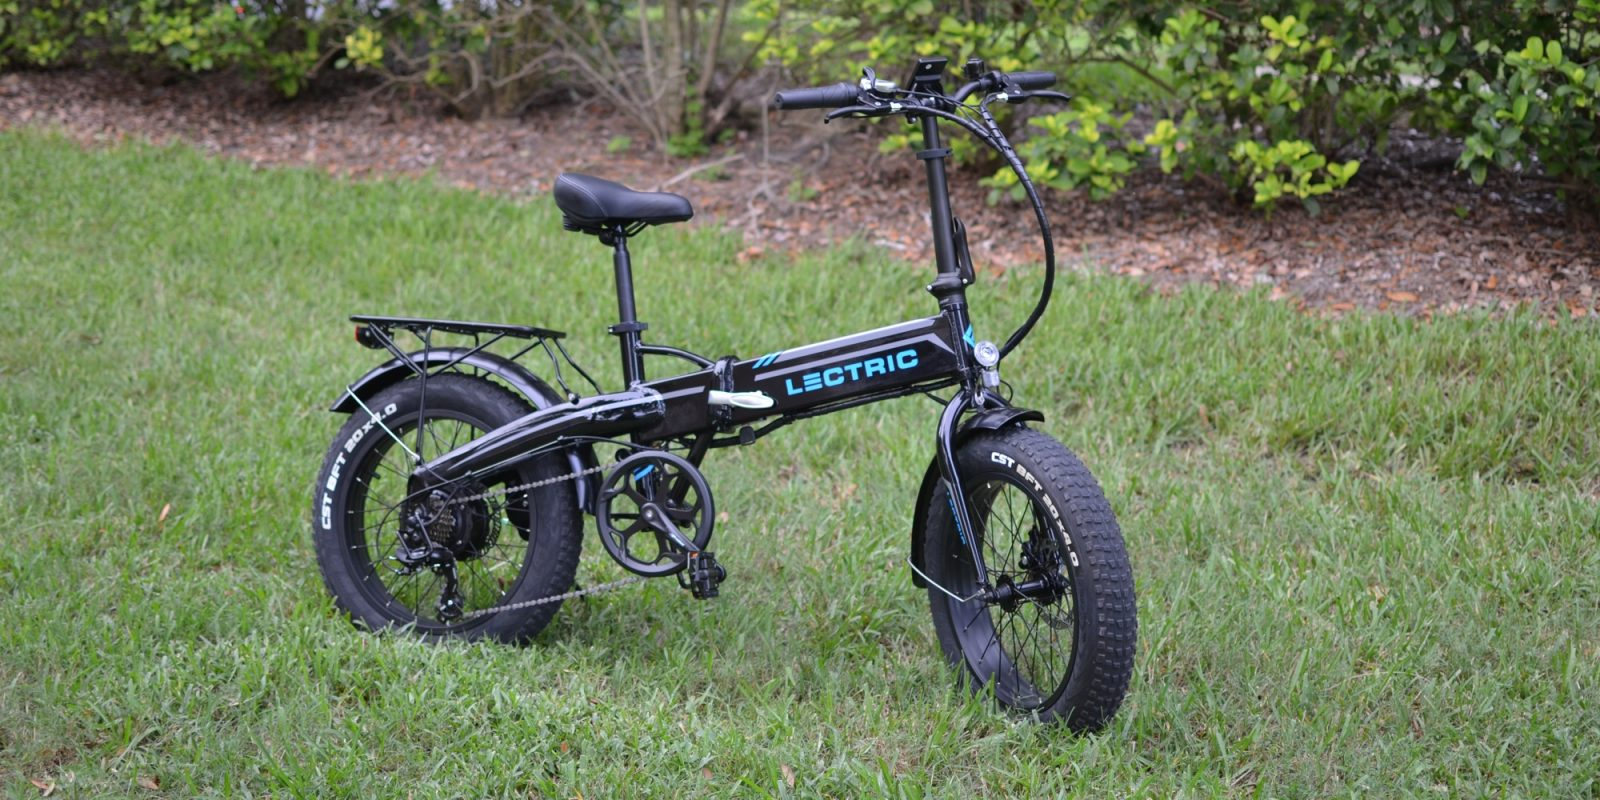 Review: Lectric XP e-bike is the epitome of low cost meets high-speed fun